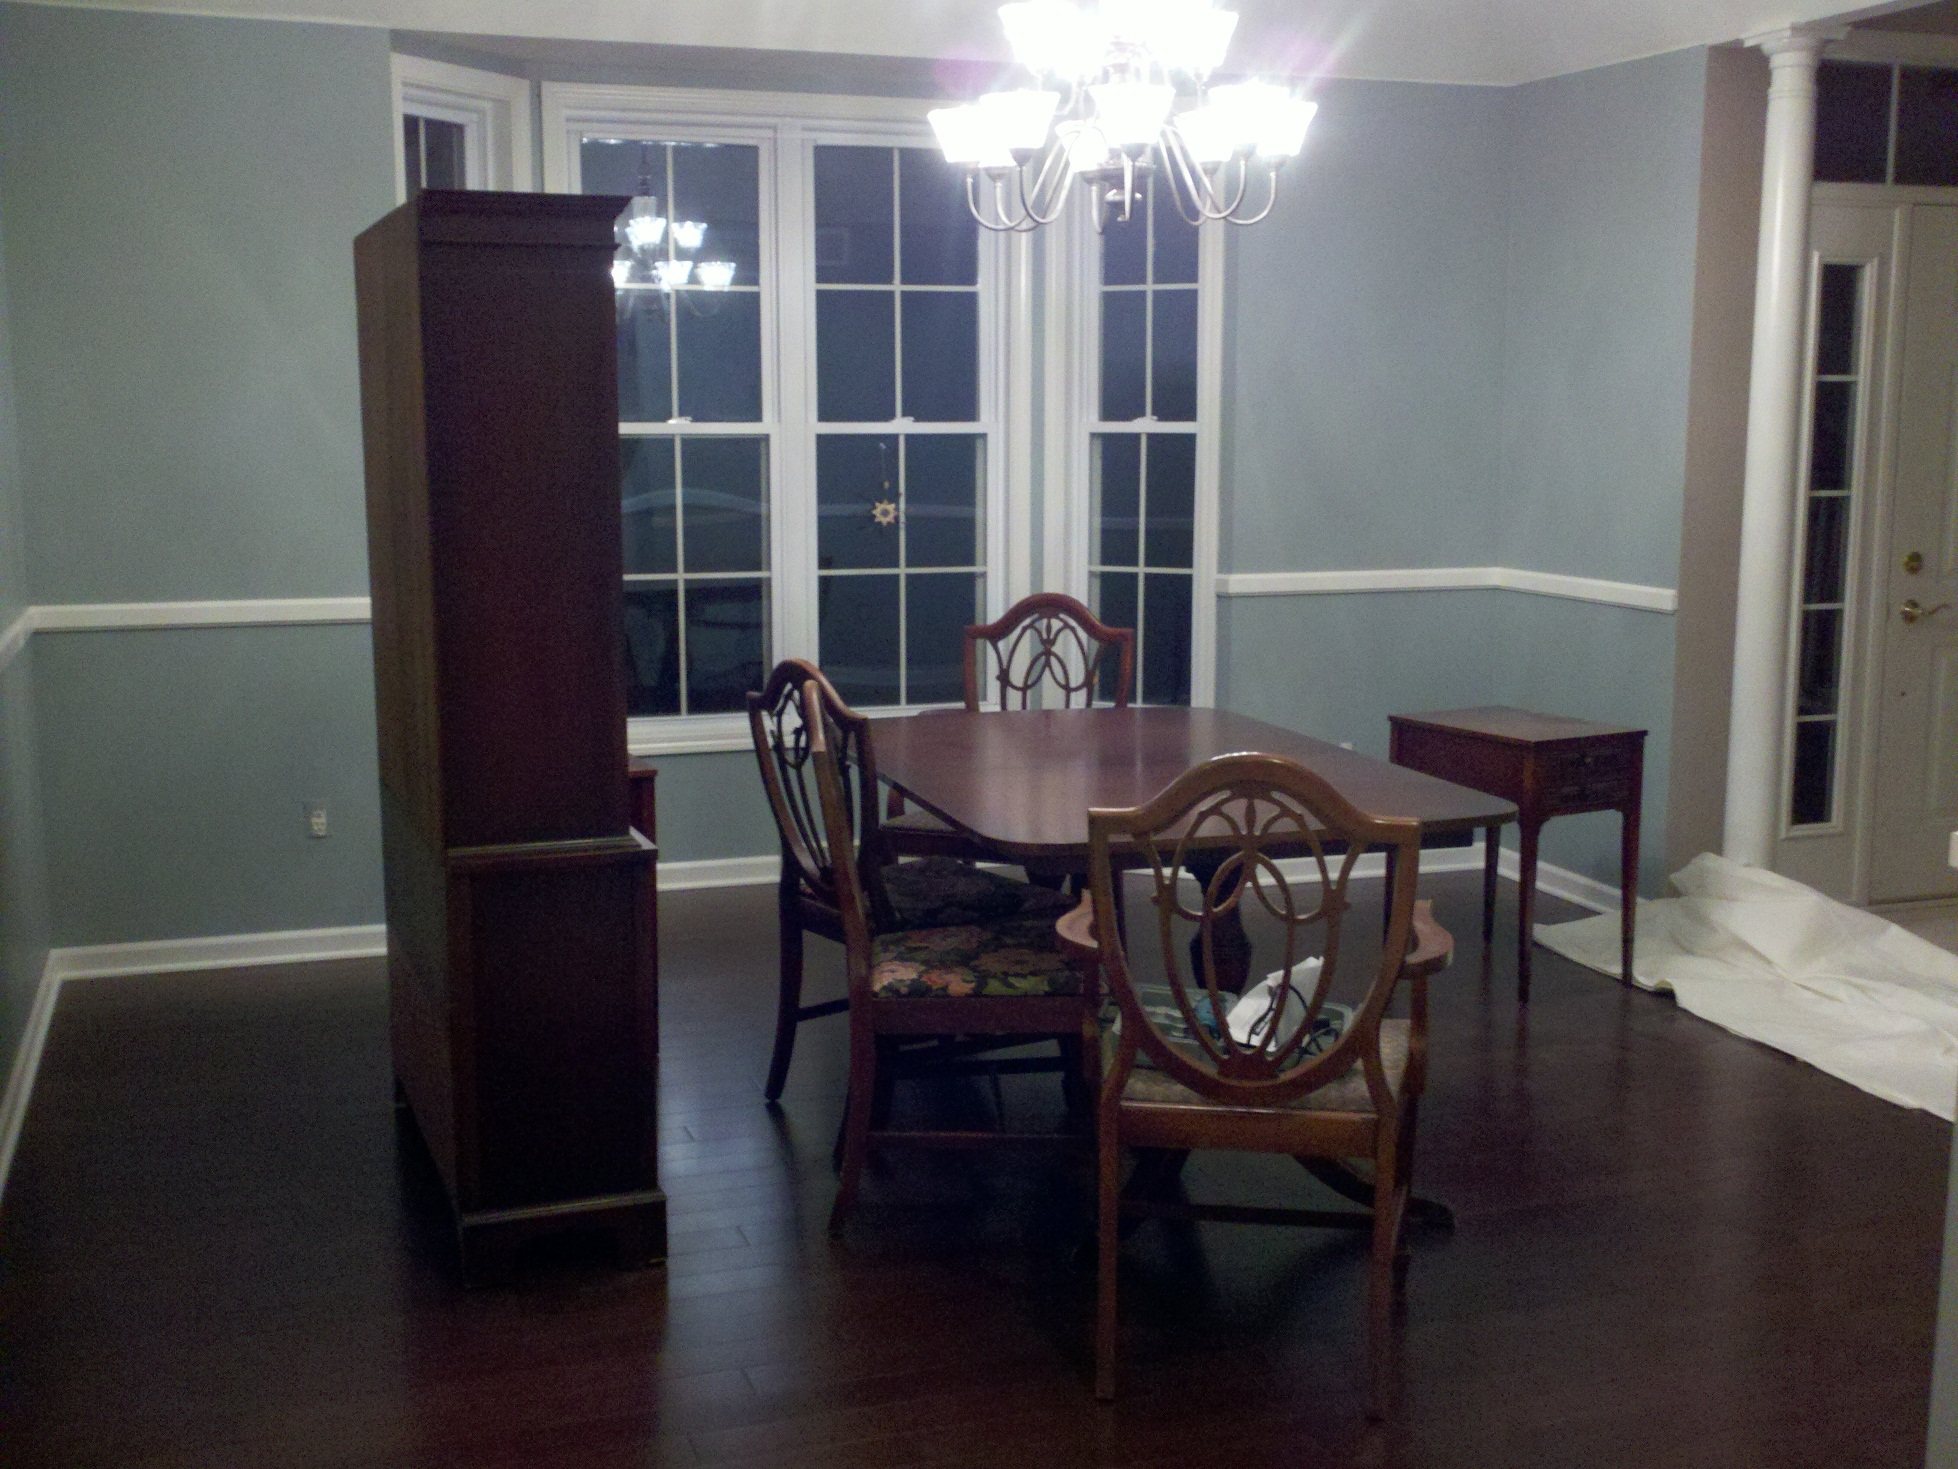 Help Me Chose An Accent Color Hardwood Drapes Fireplace Paint Home Interior Design And